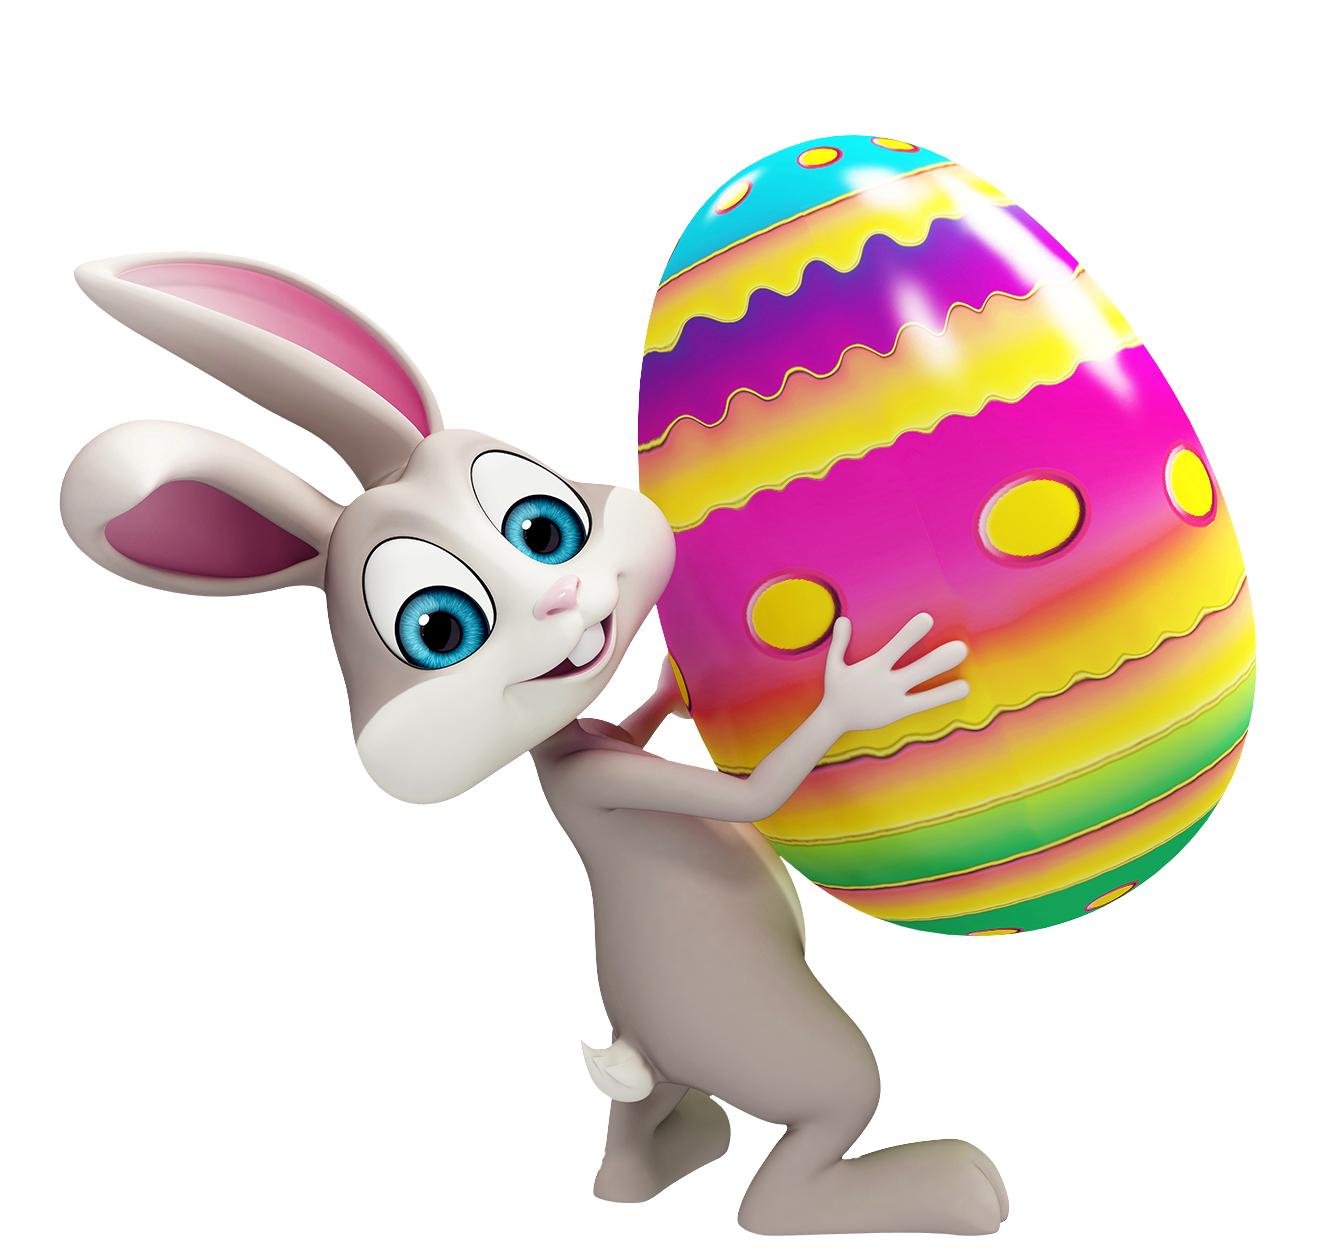 Easter with colorful egg. Clipart bunny marshmallow peep